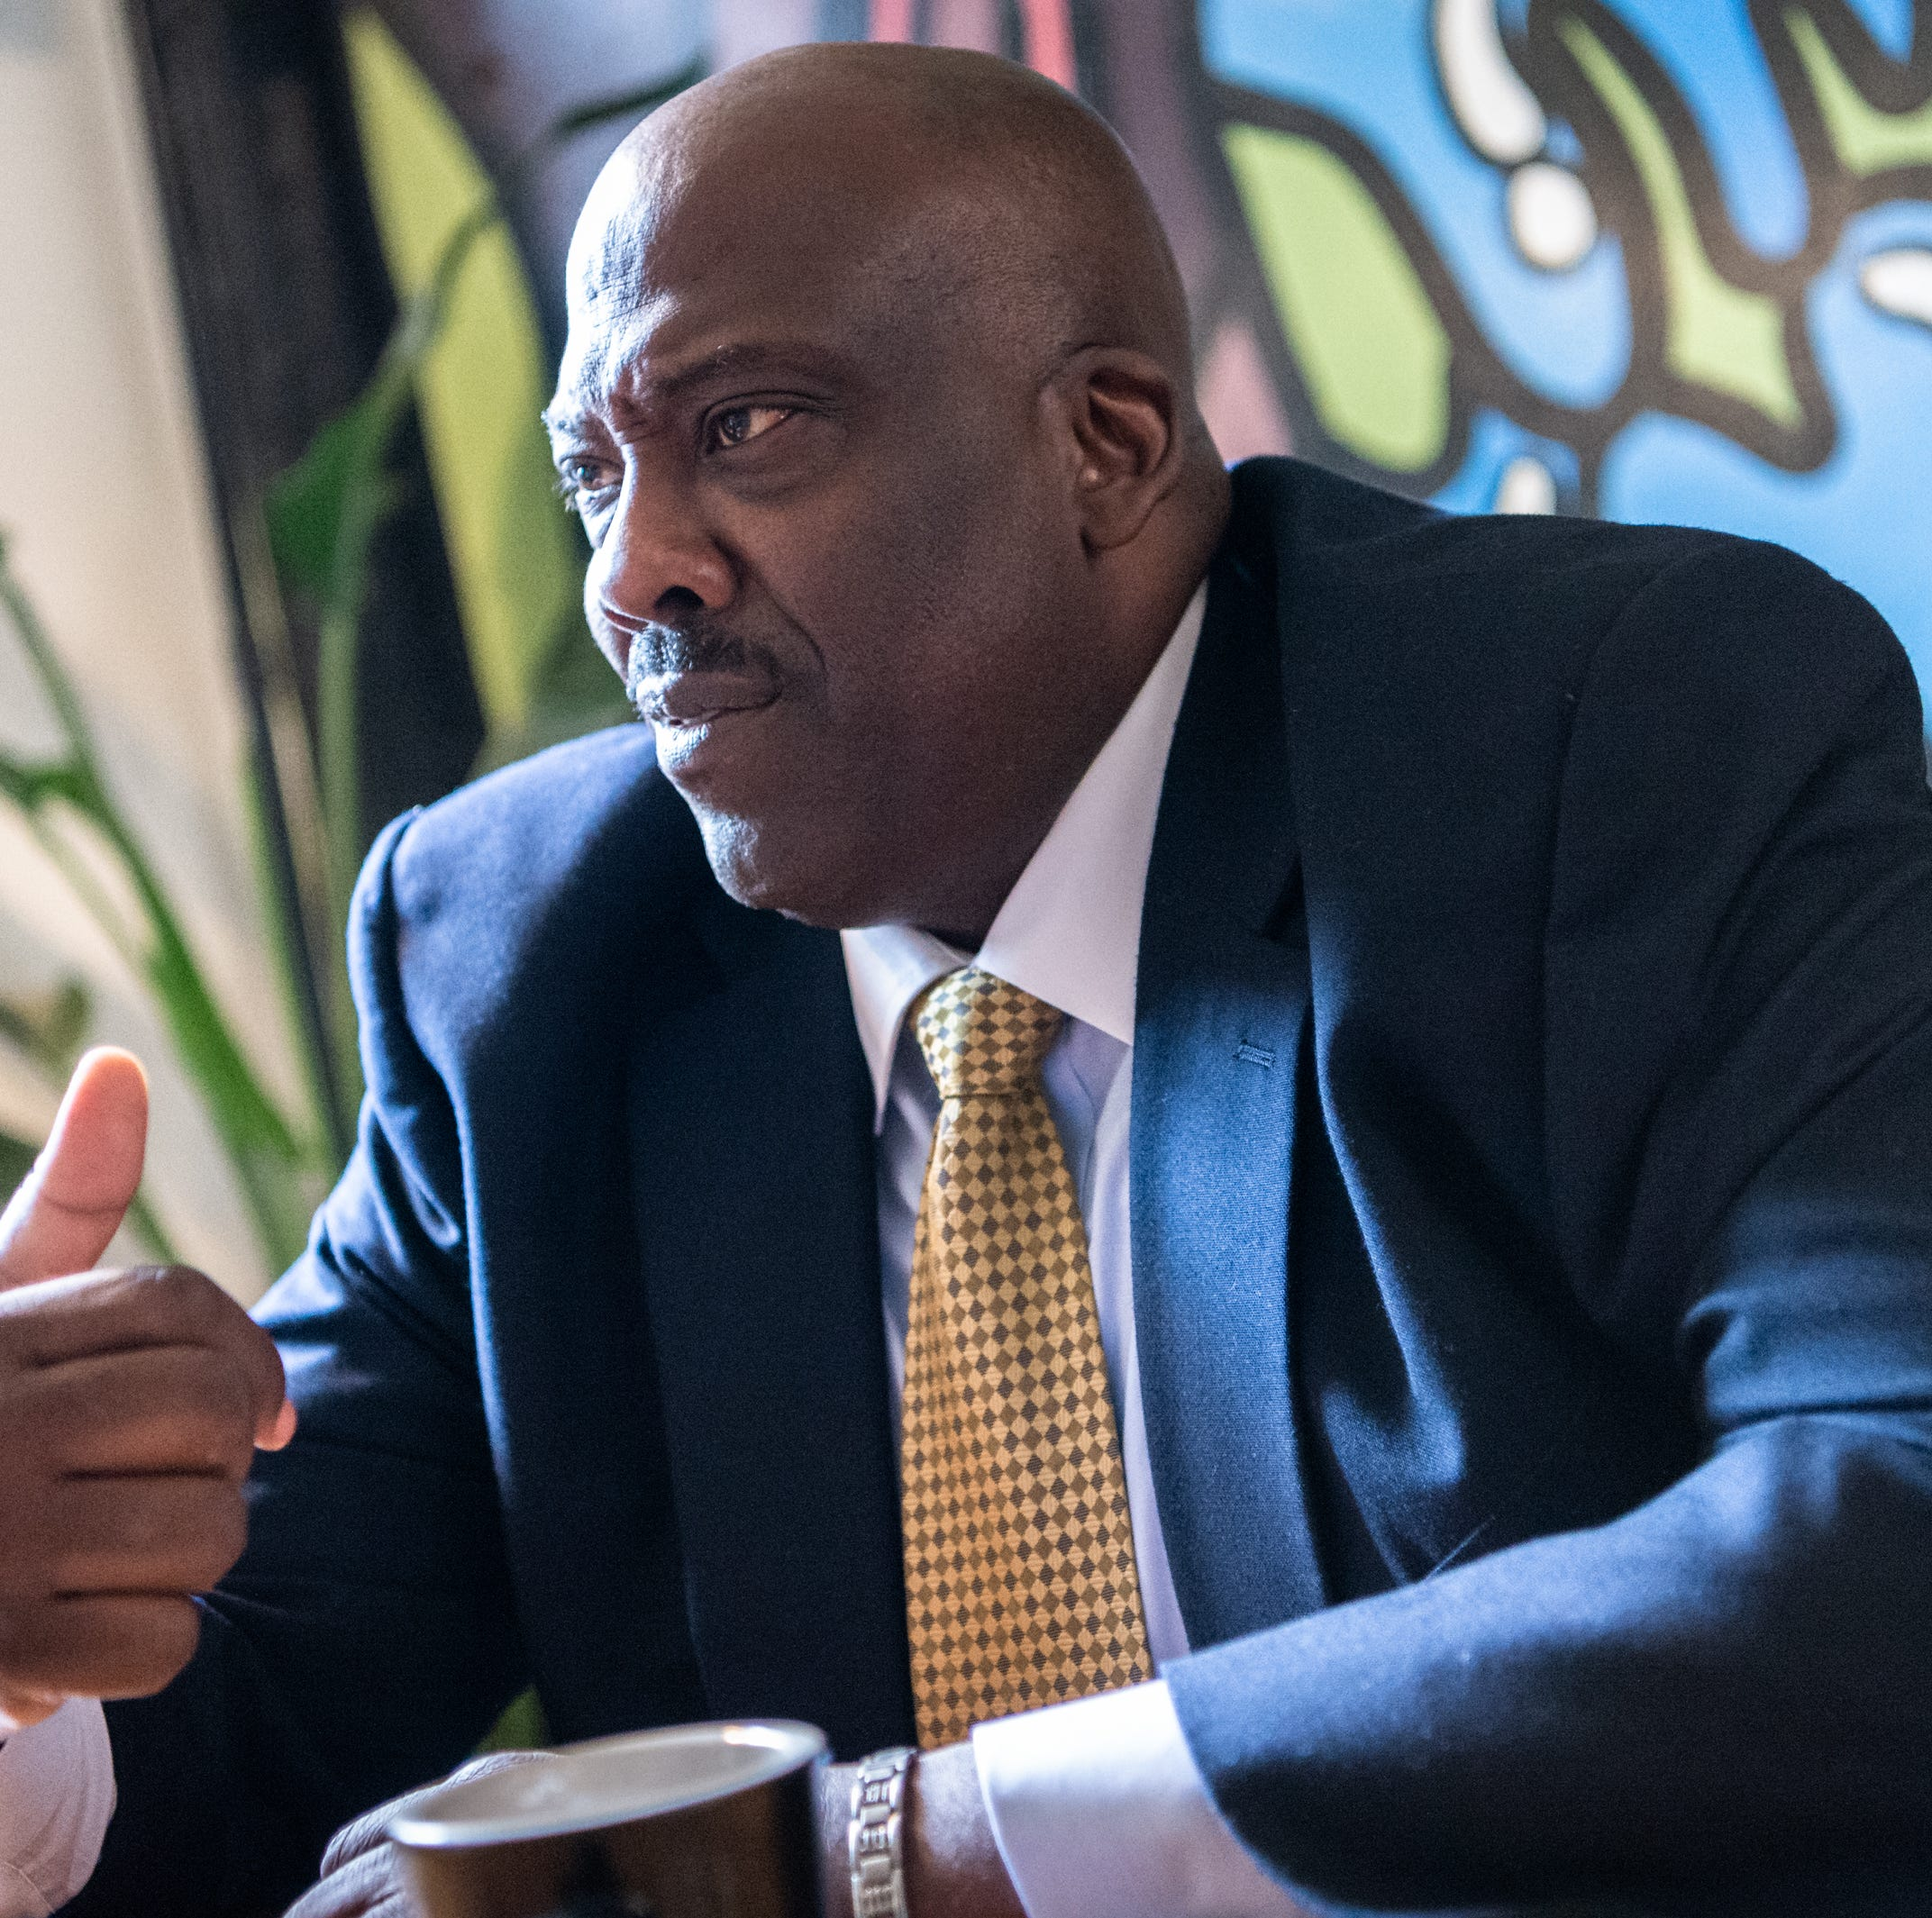 With Quentin Miller in as sheriff, Buncombe may join nationwide, jail diversion movement